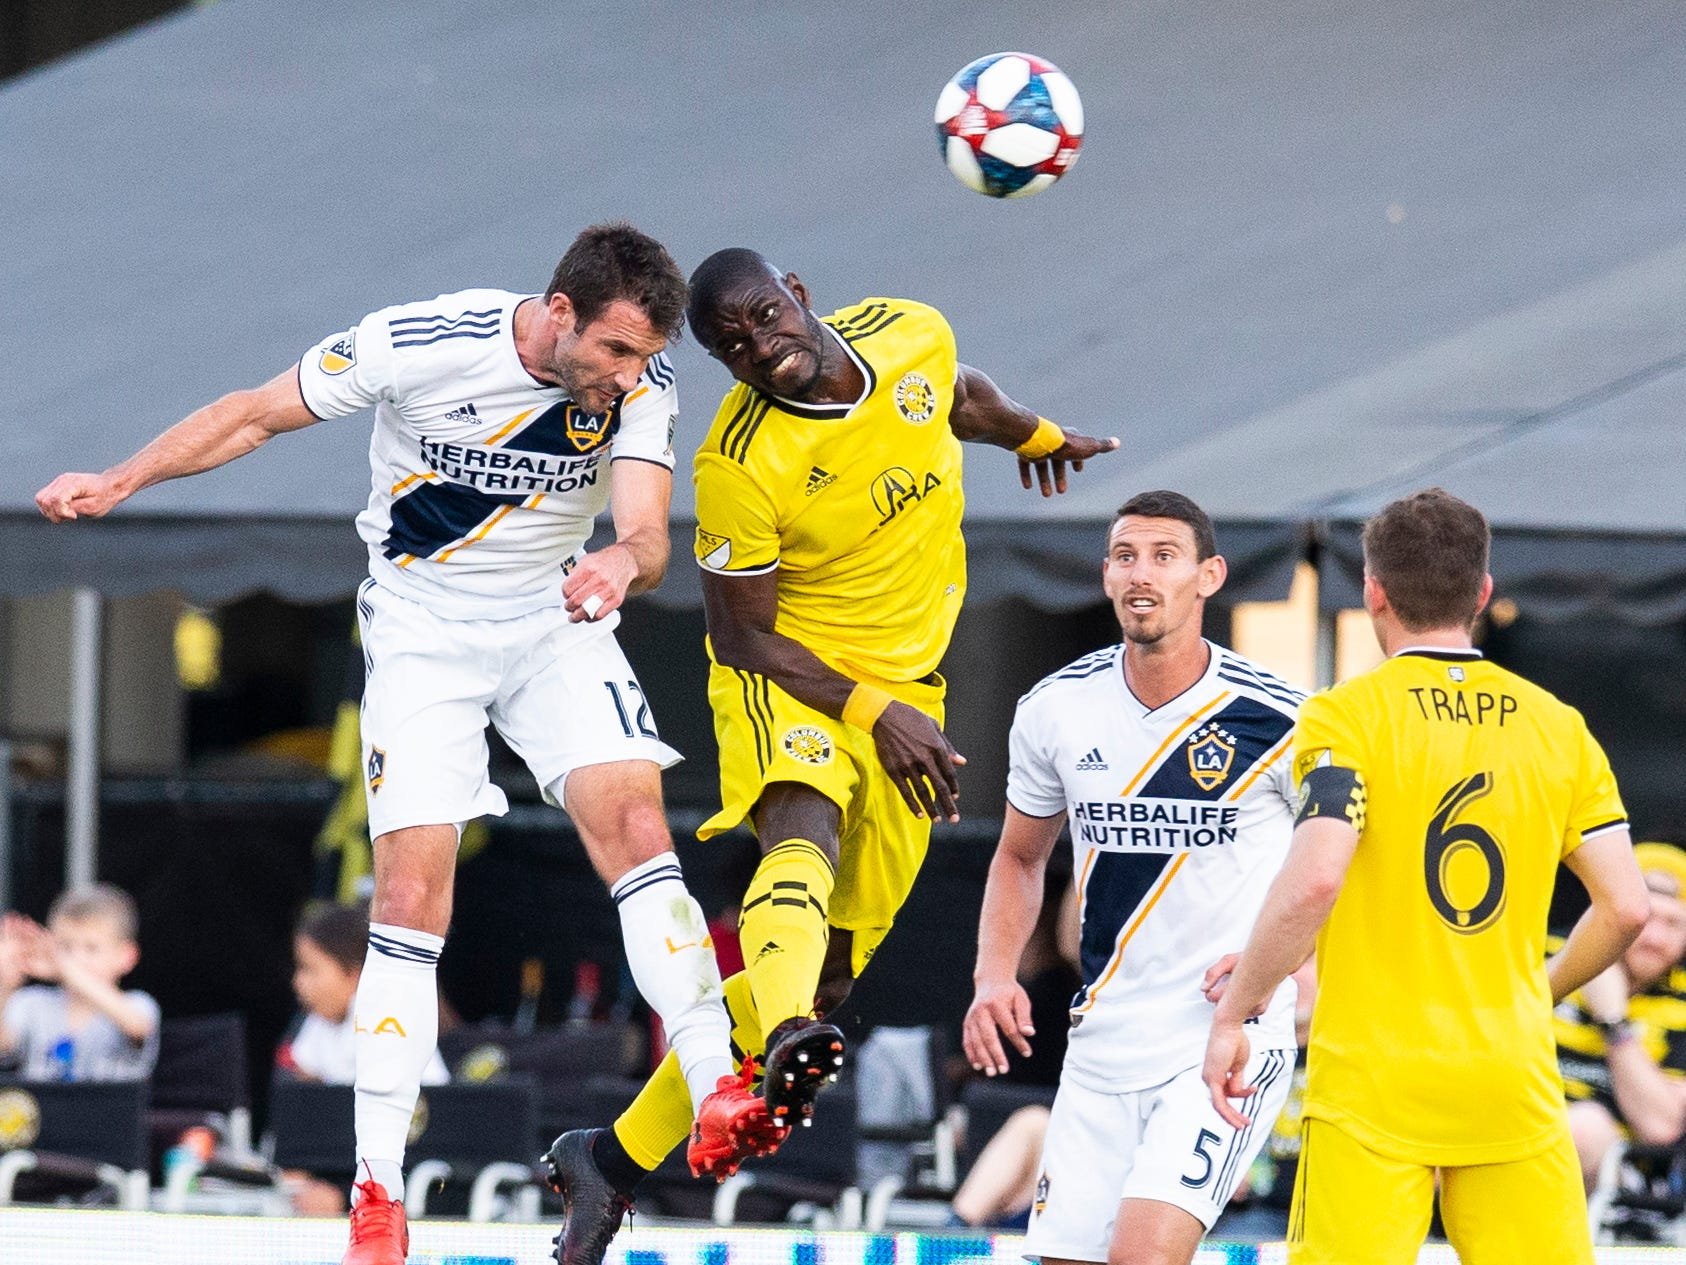 May 8: Los Angeles Galaxy forward Chris Pontius (12) and Columbus Crew SC defender Jonathan Mensah (4) battle for the ball in the air at MAPFRE Stadium. Columbus won the game, 3-1.